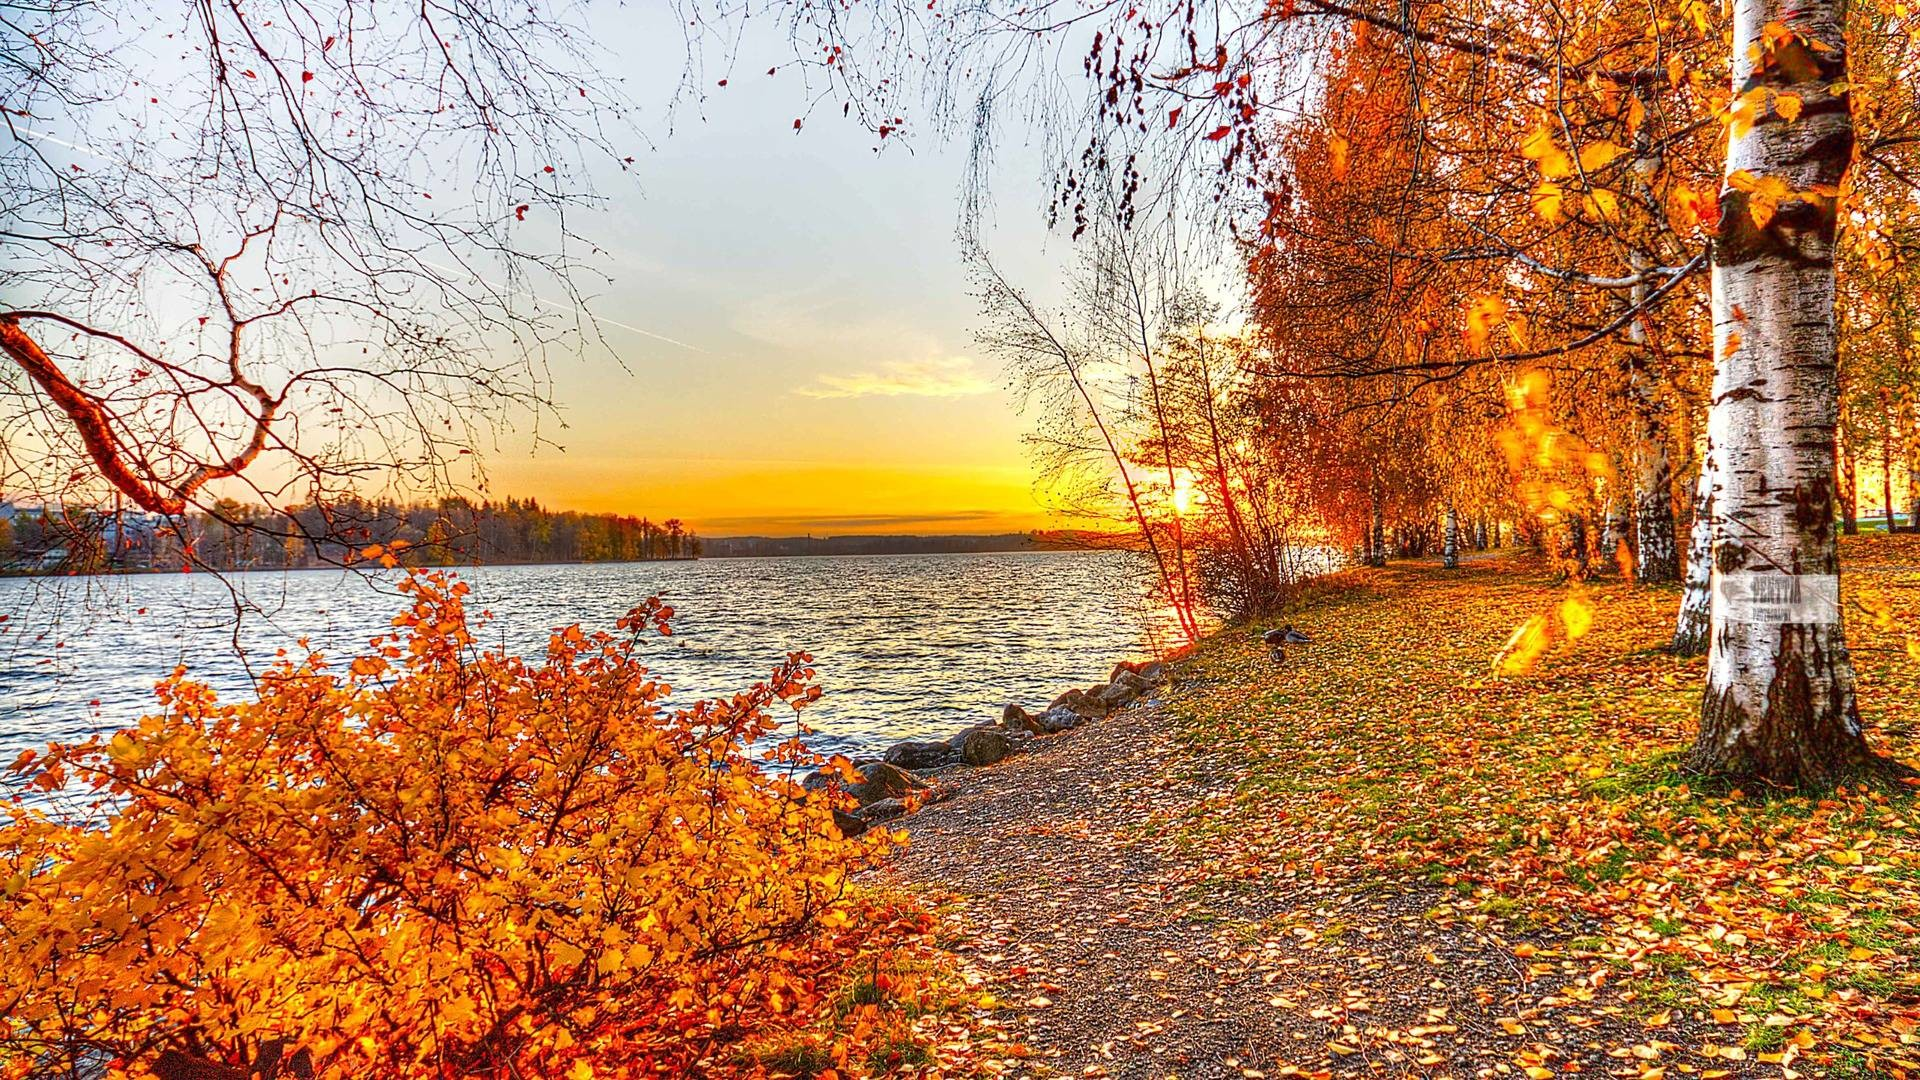 Beautiful Fall Pictures Wallpaper (60+ images)